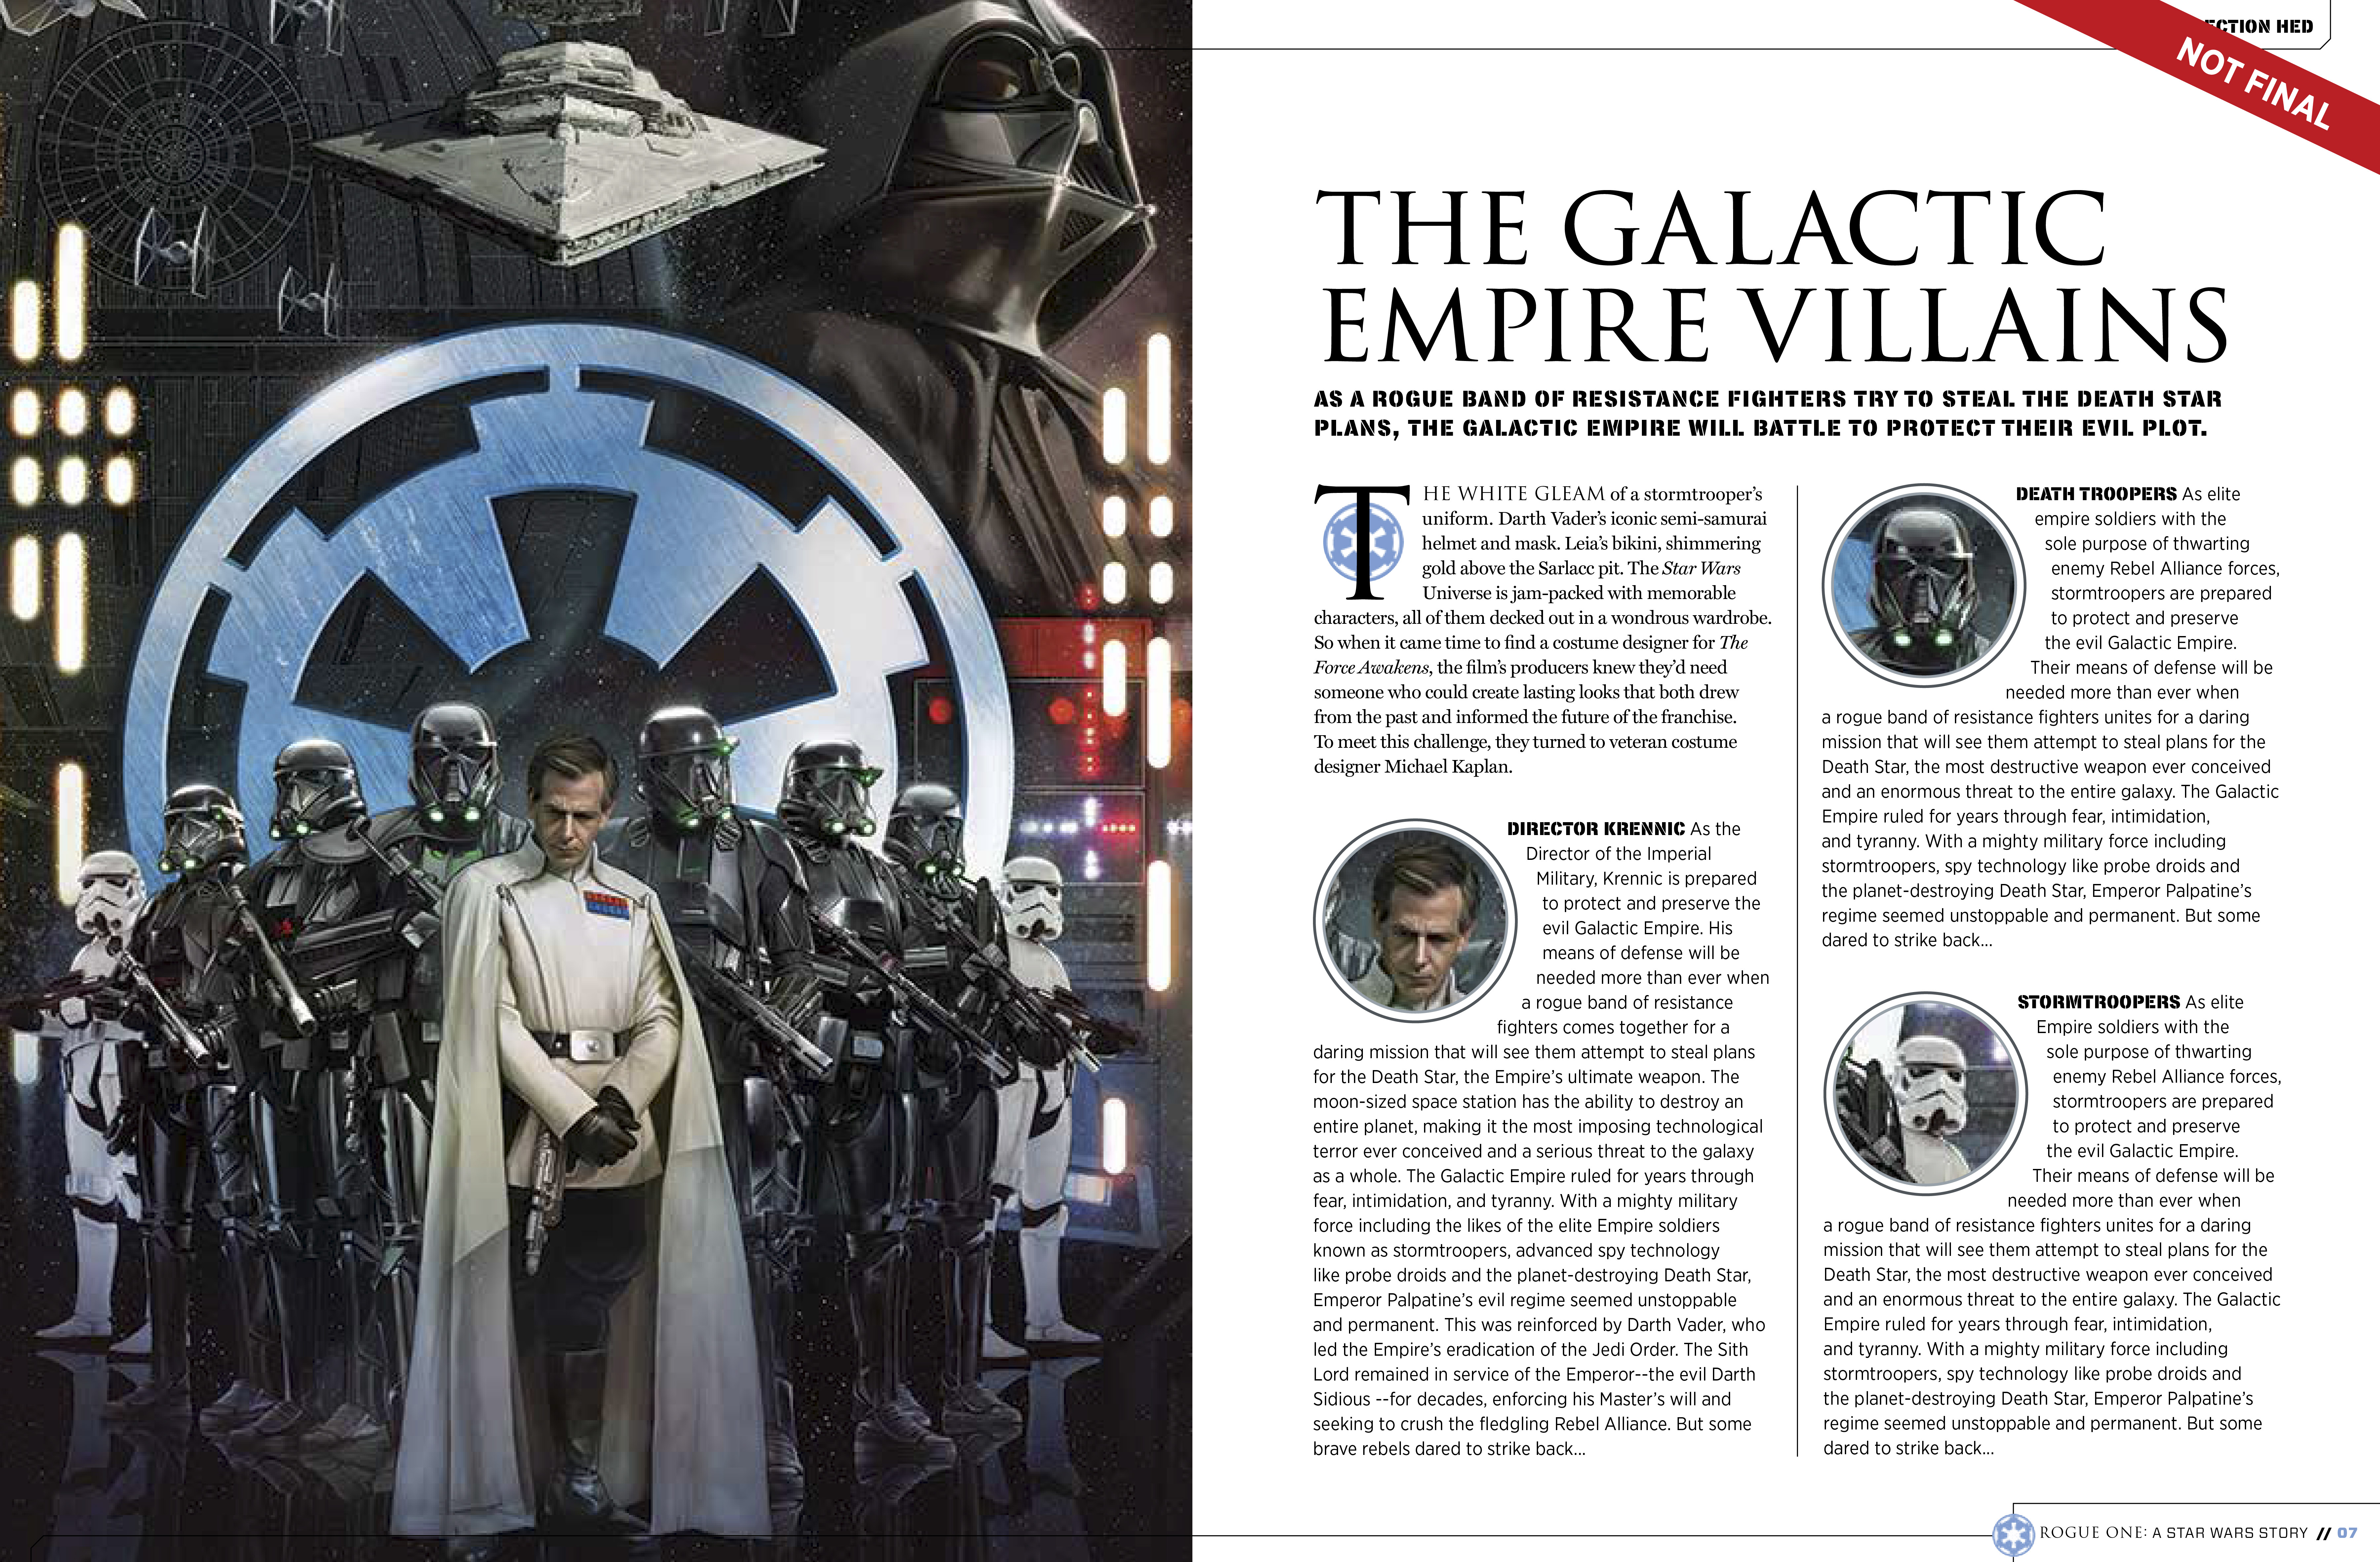 9781942556411 il 3 9e67c Star Wars: Rogue One character details, new ships revealed in leaked visual guide